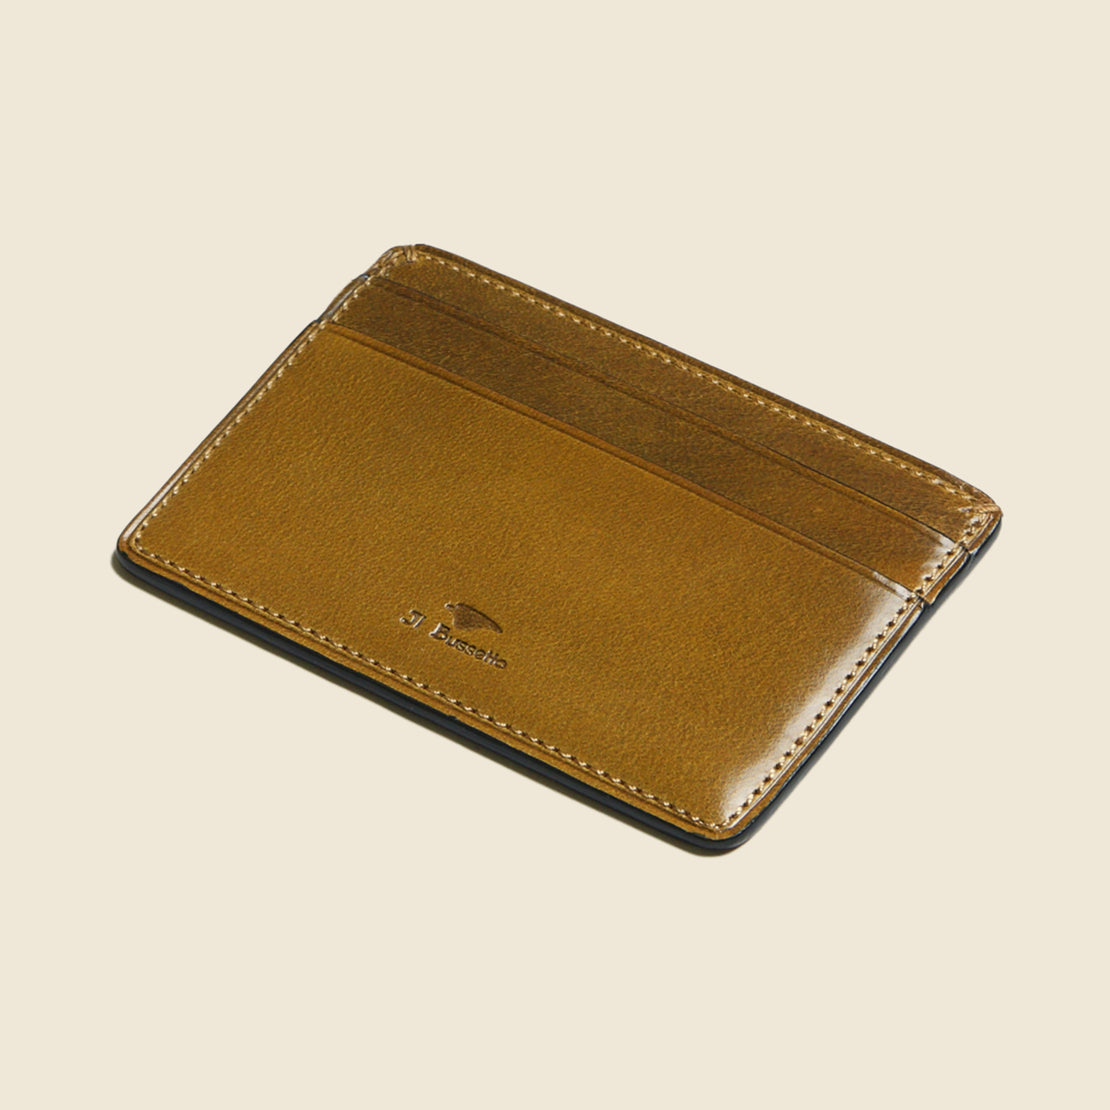 Credit Card Case - Light Brown - Il Bussetto - STAG Provisions - Accessories - Wallets